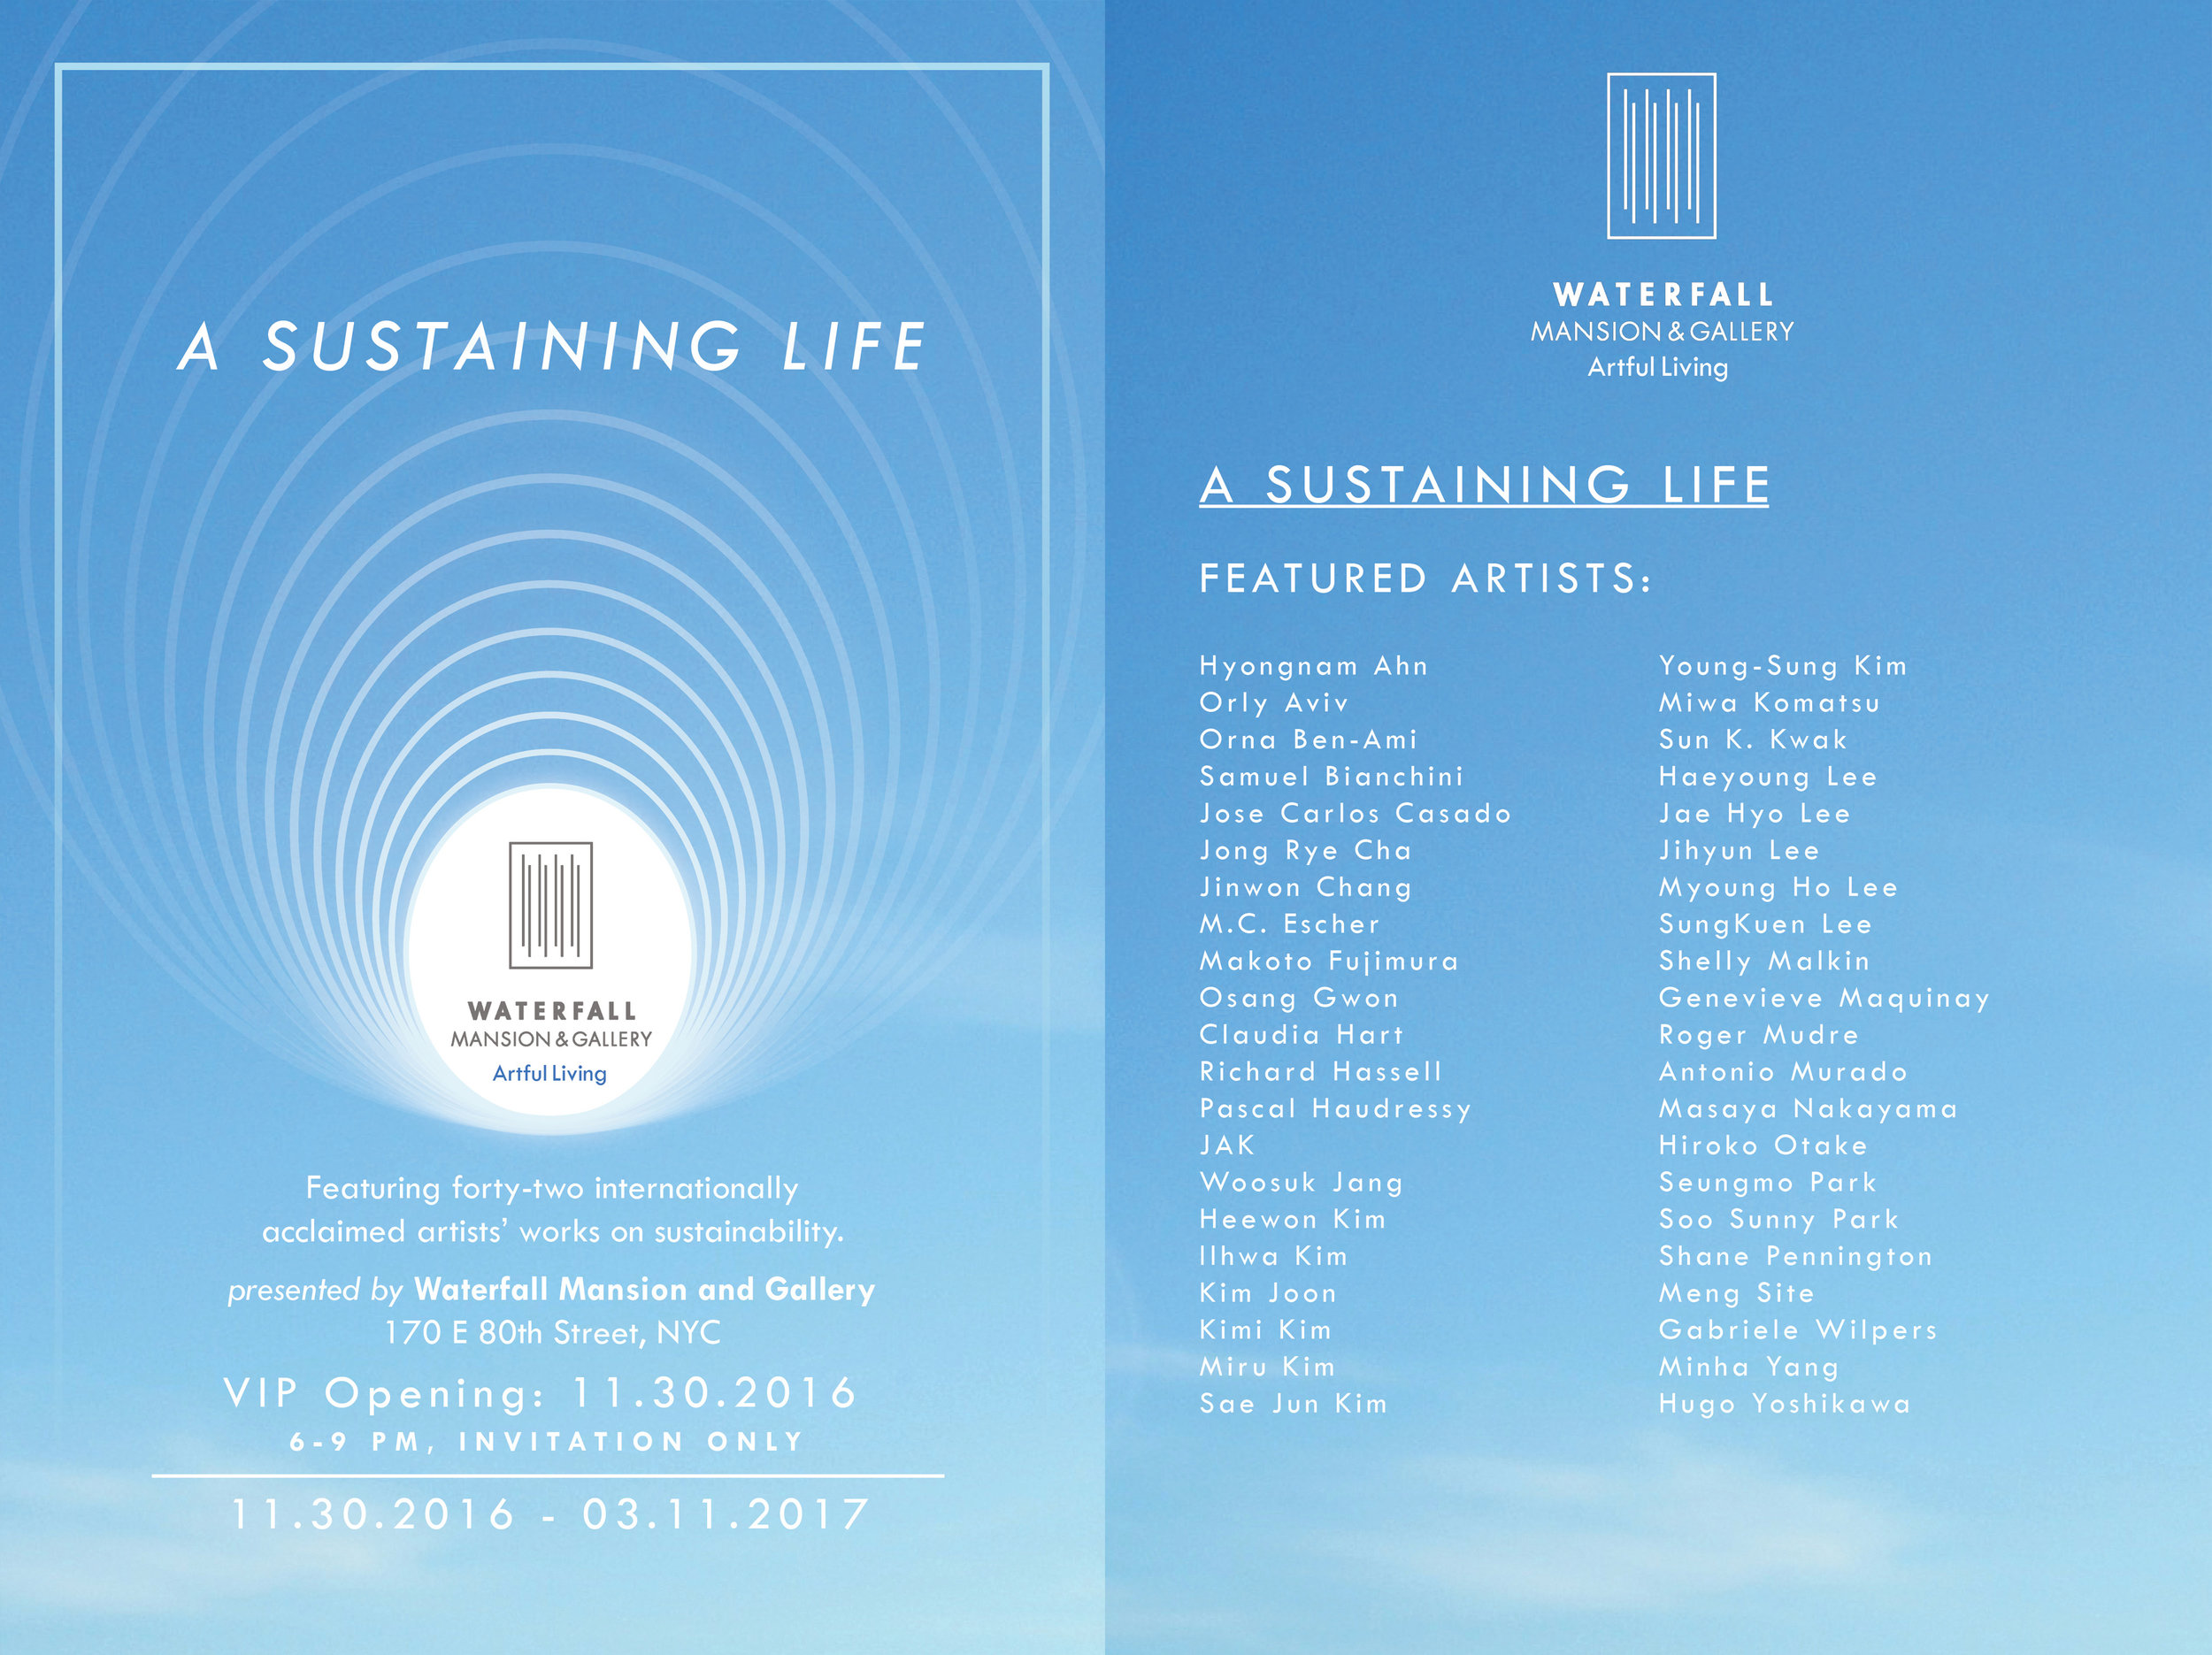 Shelly Malkin participates in A Sustaining Life at Waterfall Mansion and Gallery, November 11, 2016 - March 11, 2017